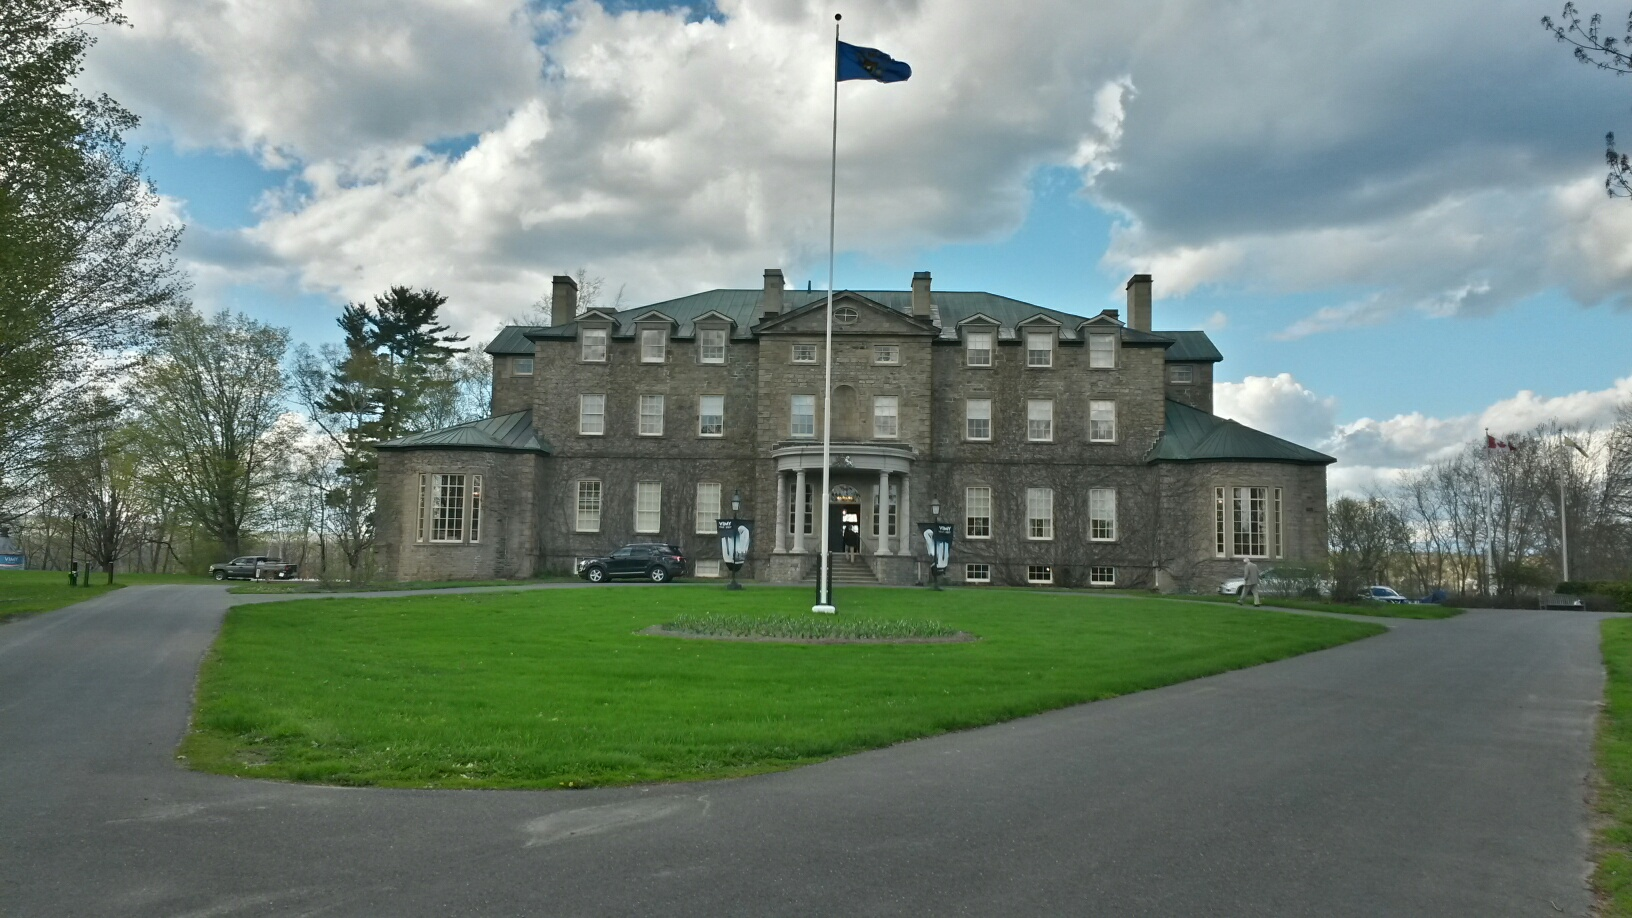 Photograph of Old Government House